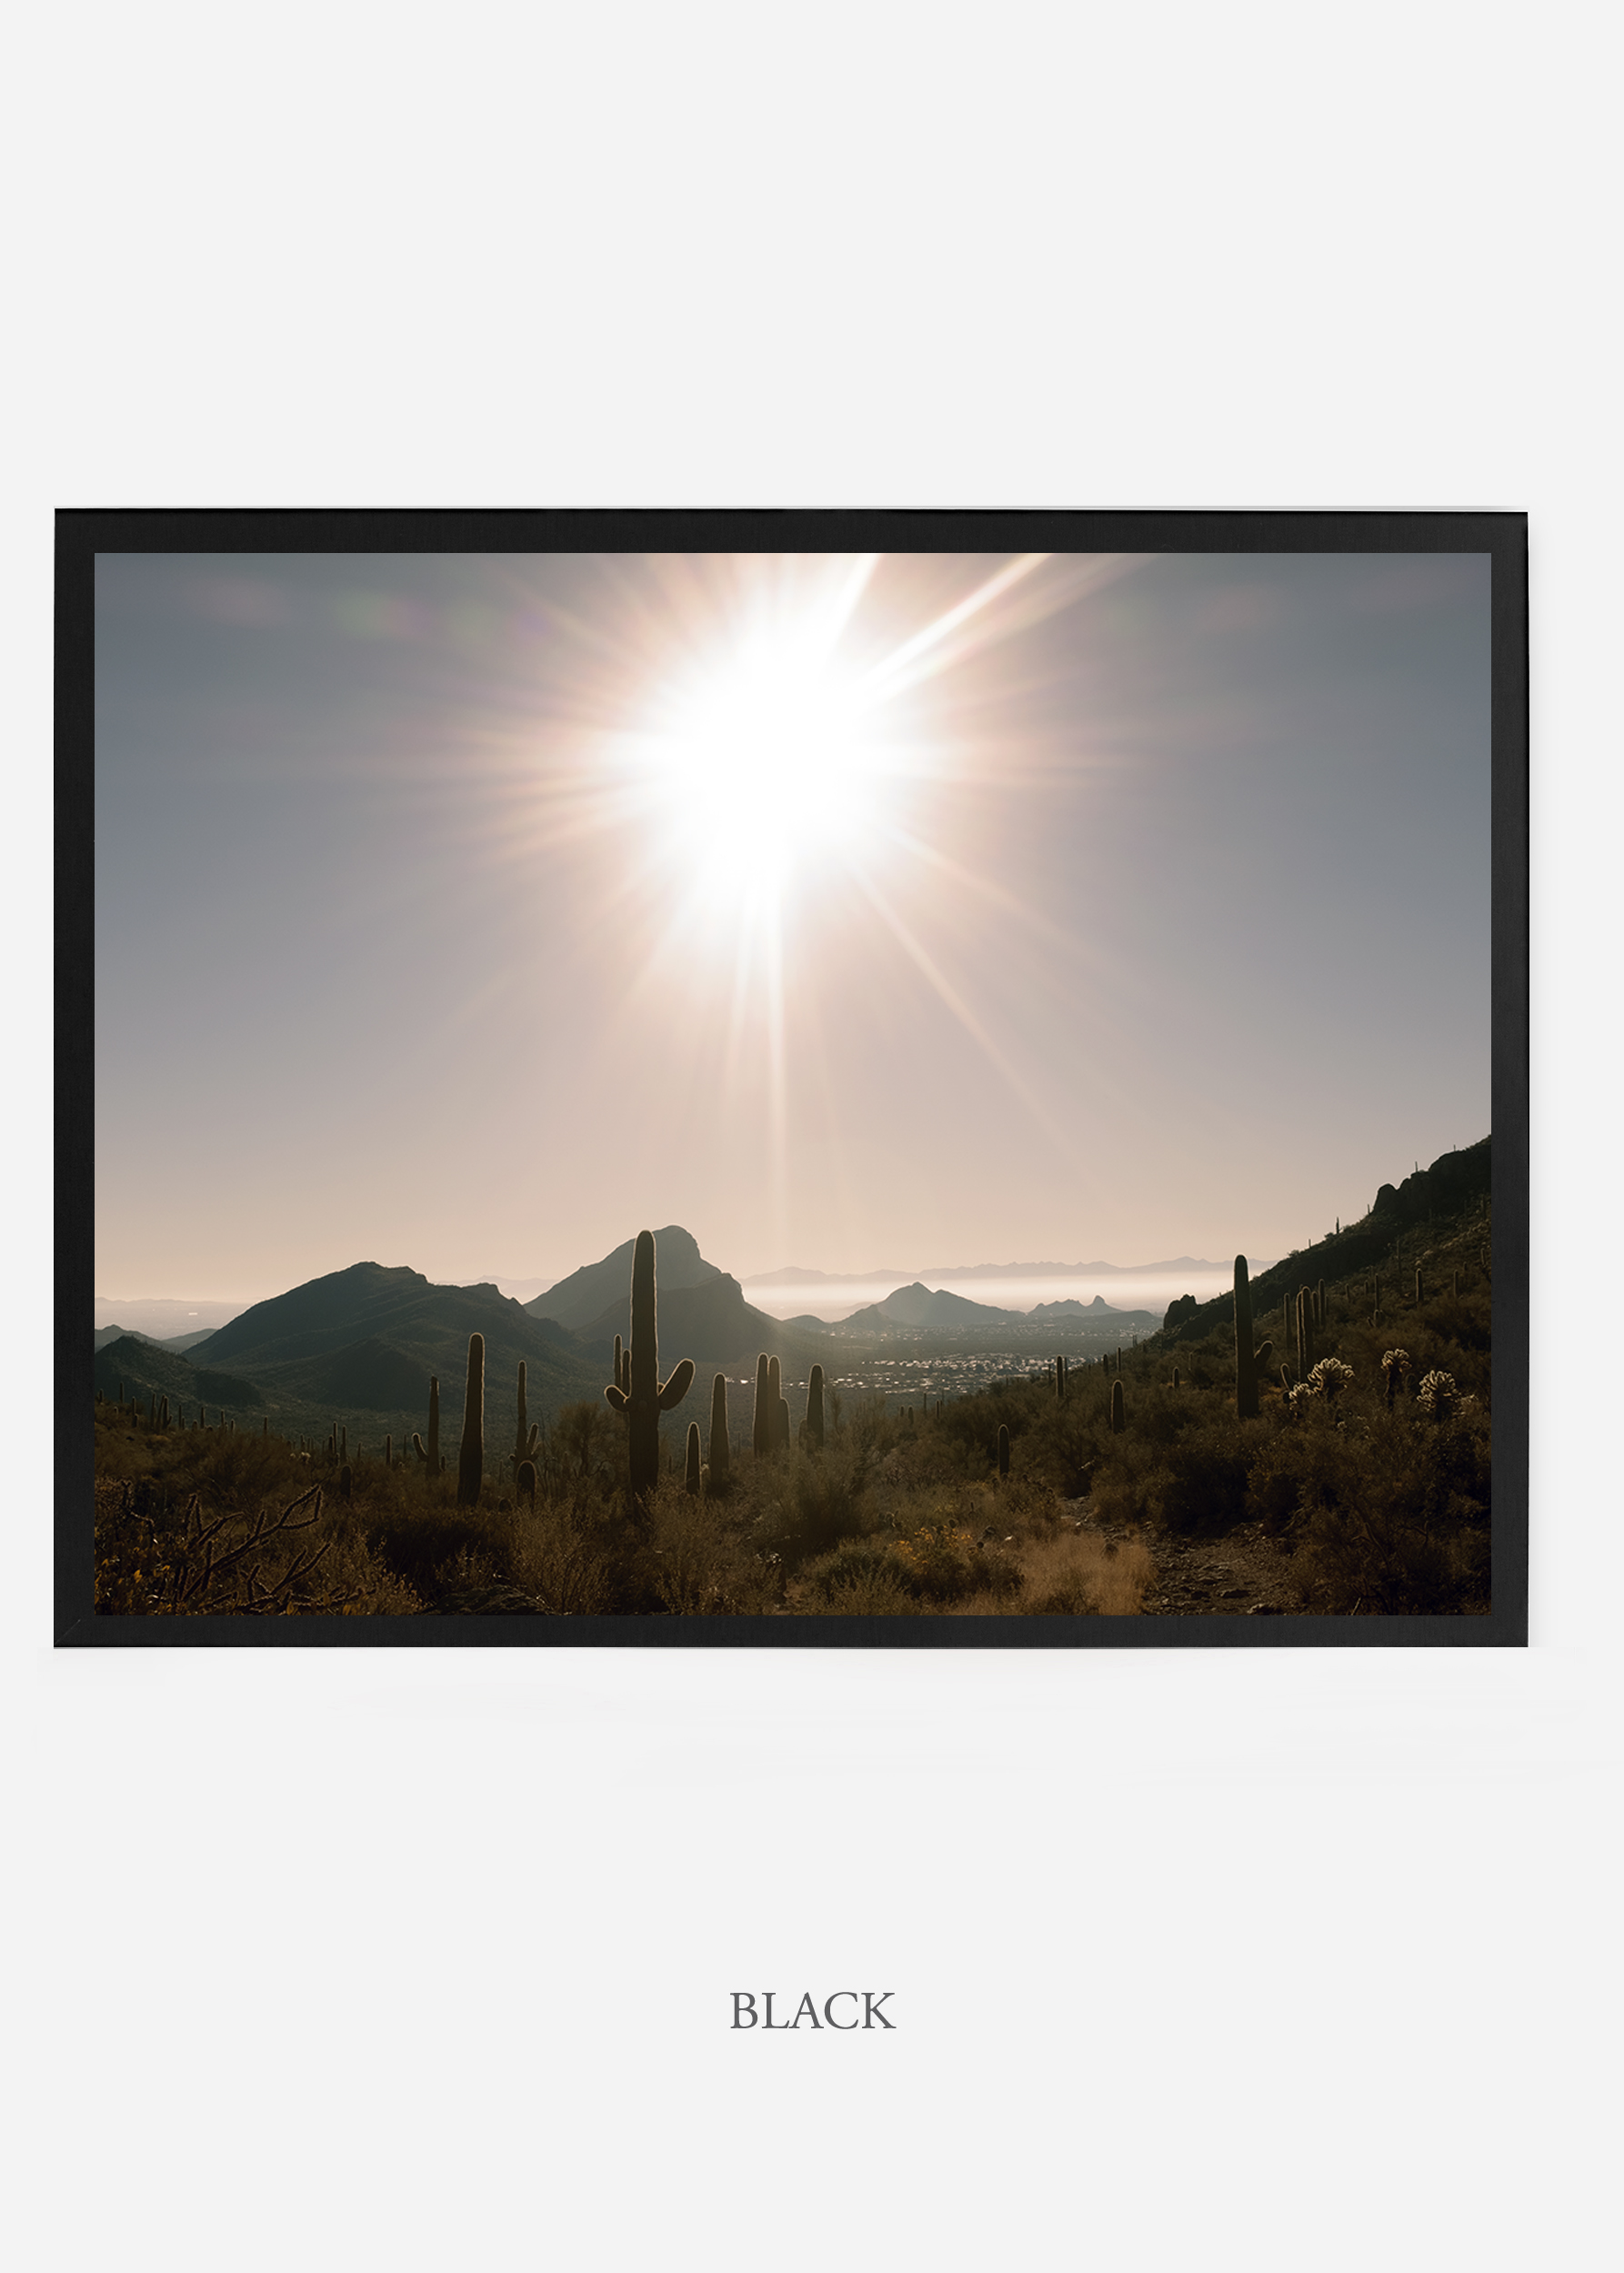 nomat_blackframe-saguaroNo.15-wildercalifornia-art-wallart-cactusprint-homedecor-prints-arizona-botanical-artwork-interiordesign.jpg